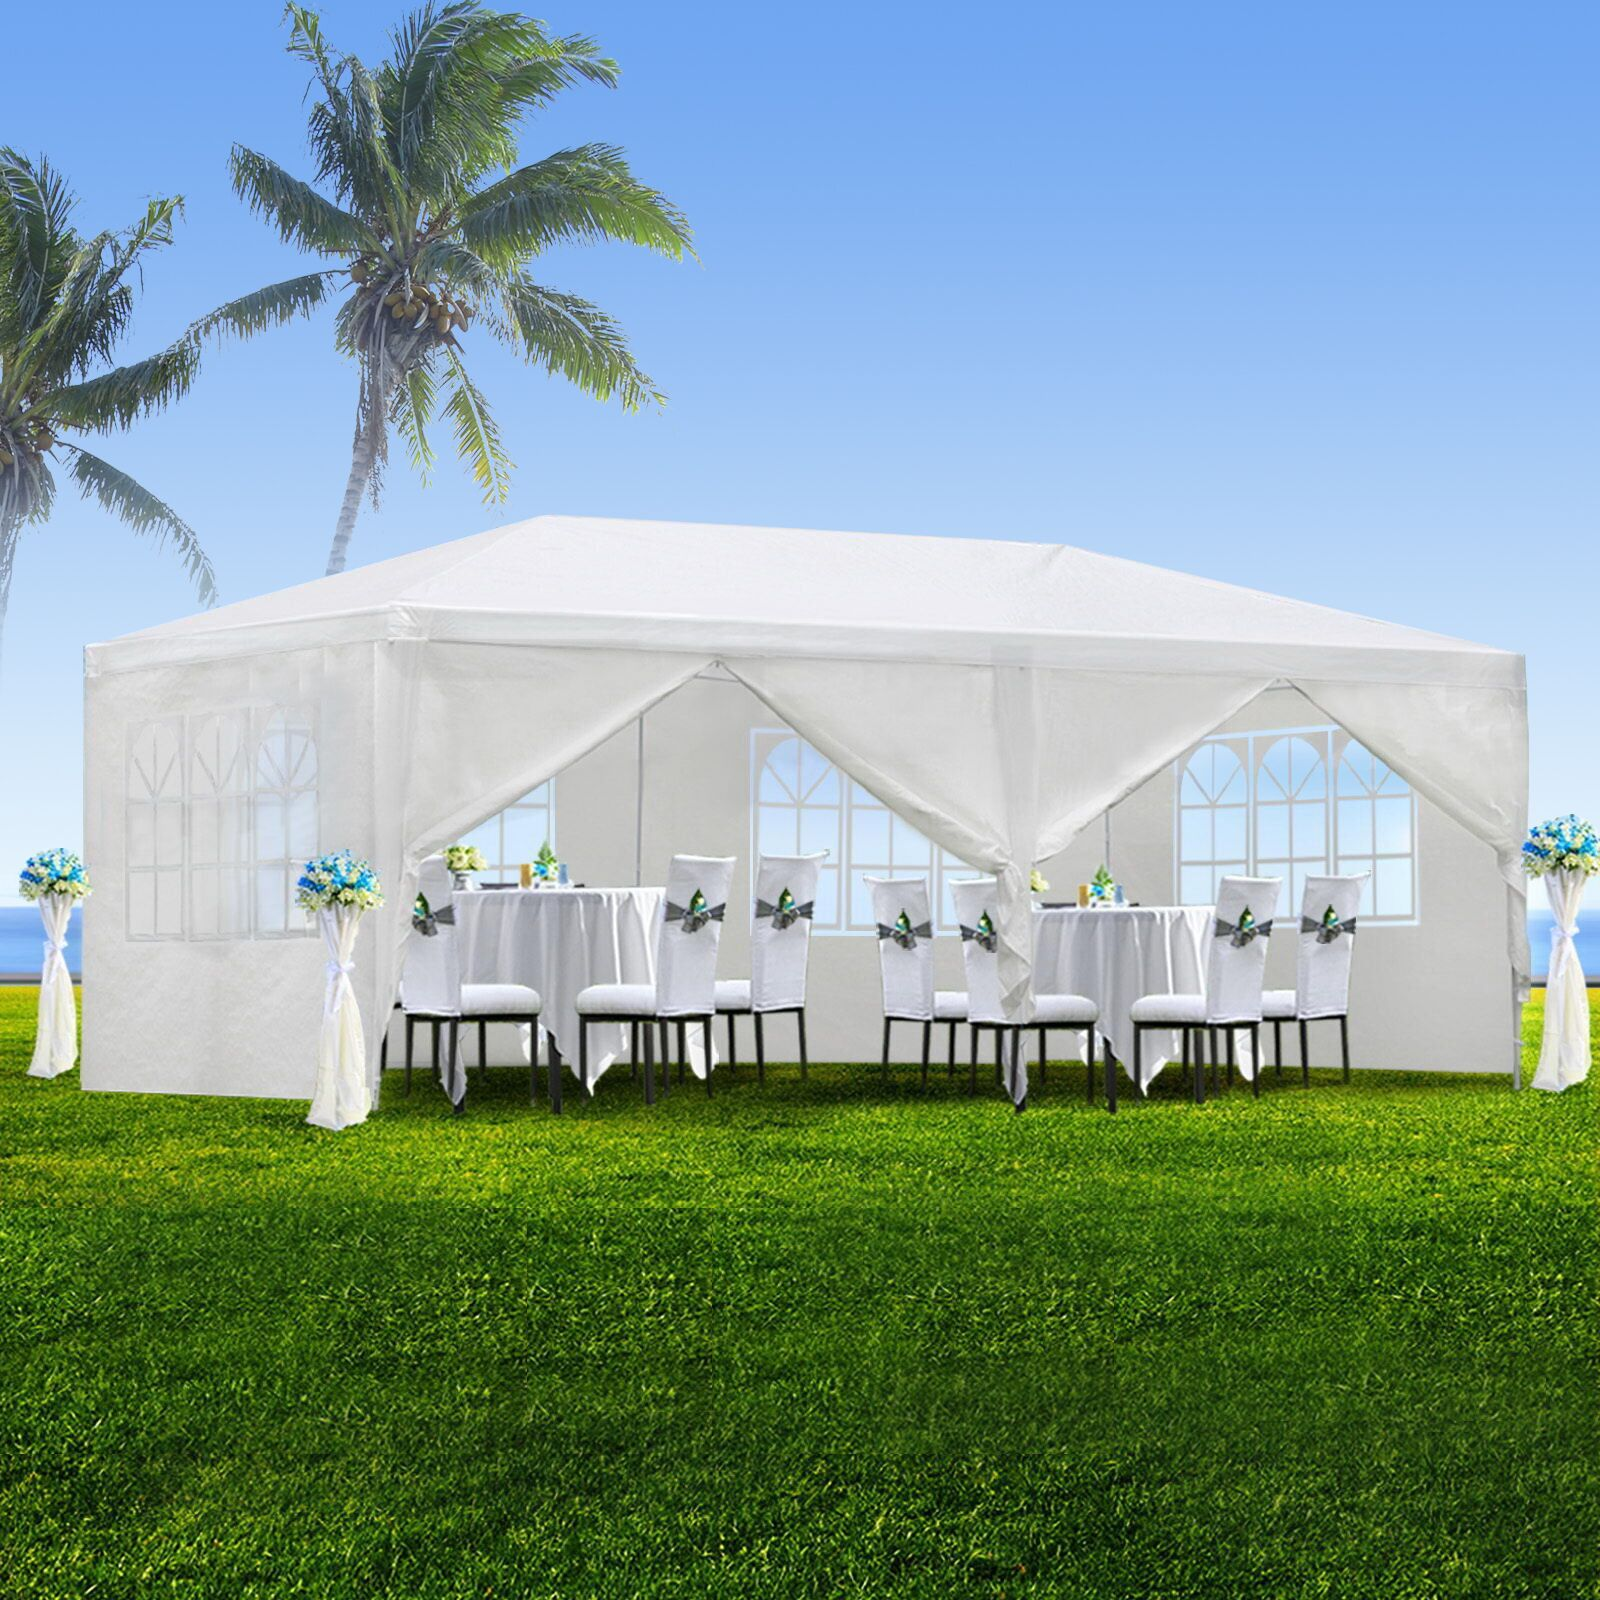 Zeny 10'x20' Outdoor Canopy Party Wedding Tent White ...